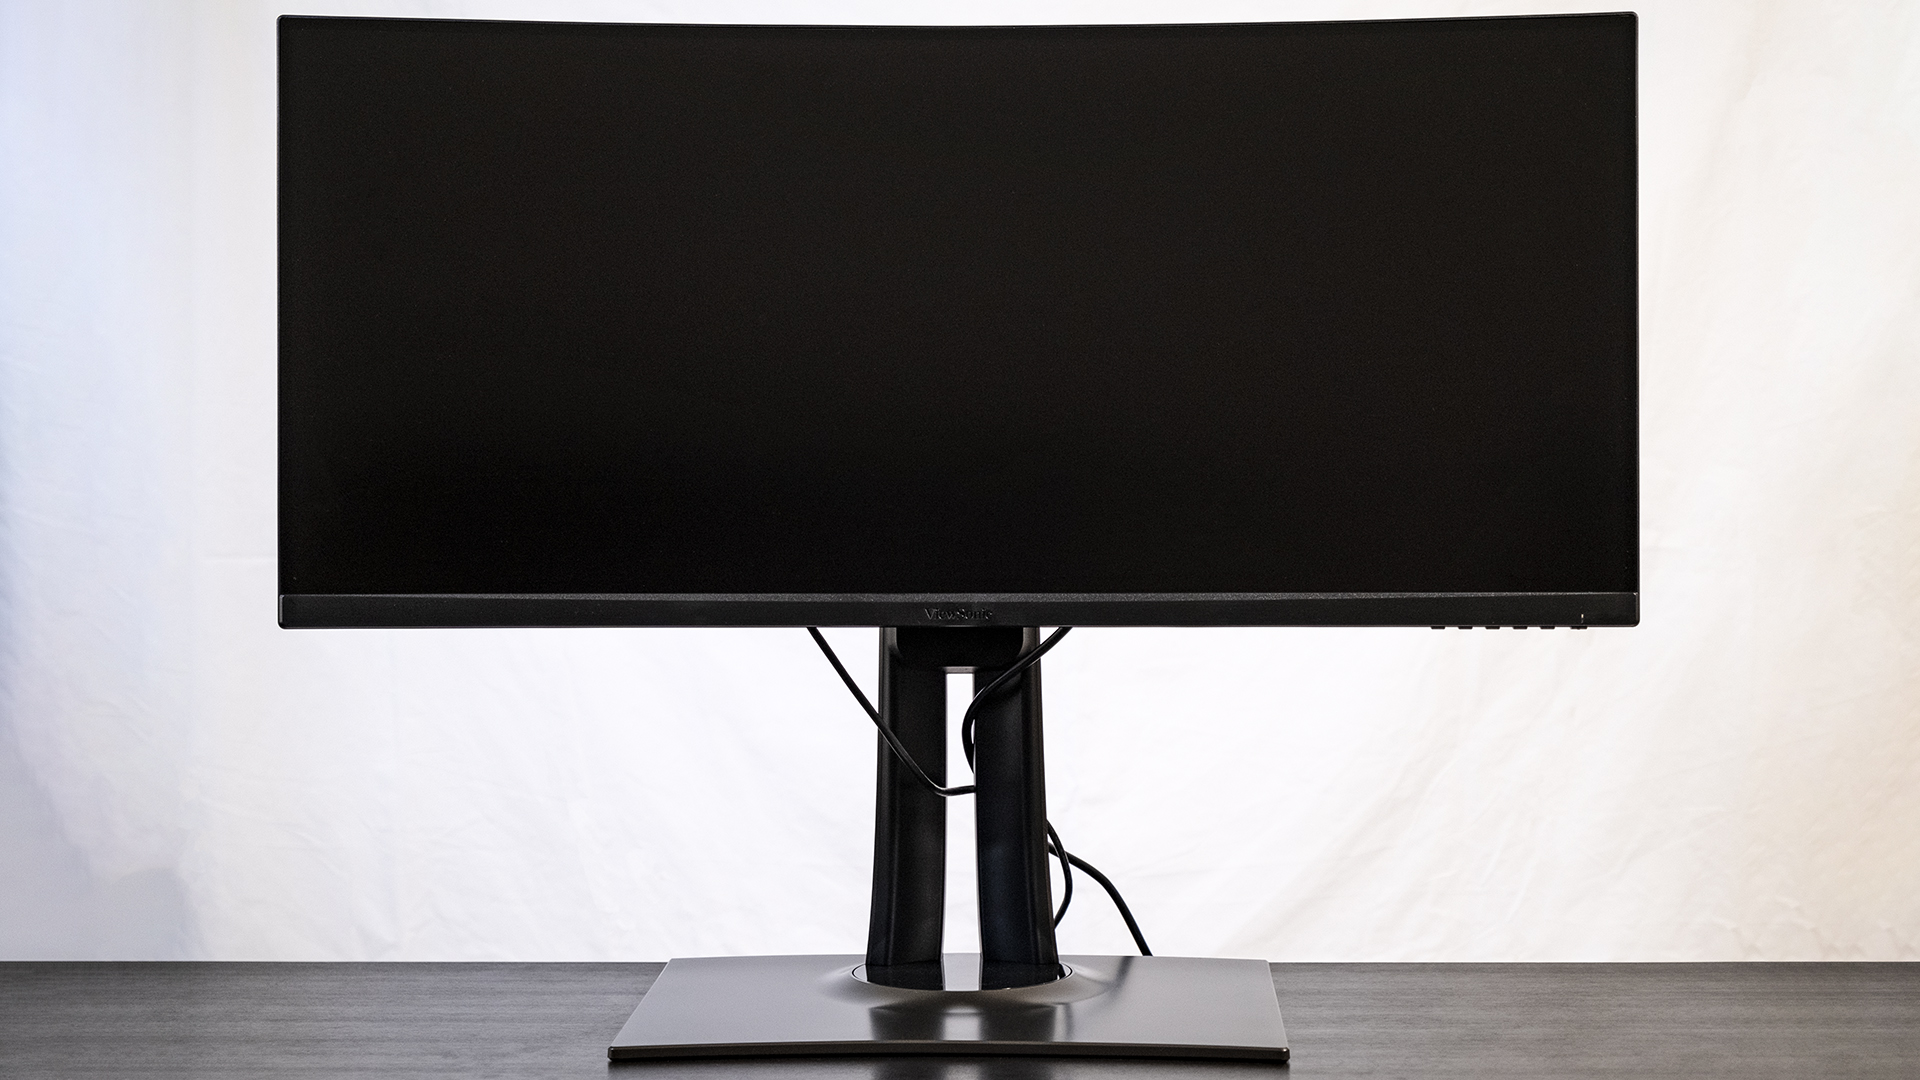 ViewSonic VP3481 ColorPro Monitor Standfuß Frontal maximale Höheneinstellung